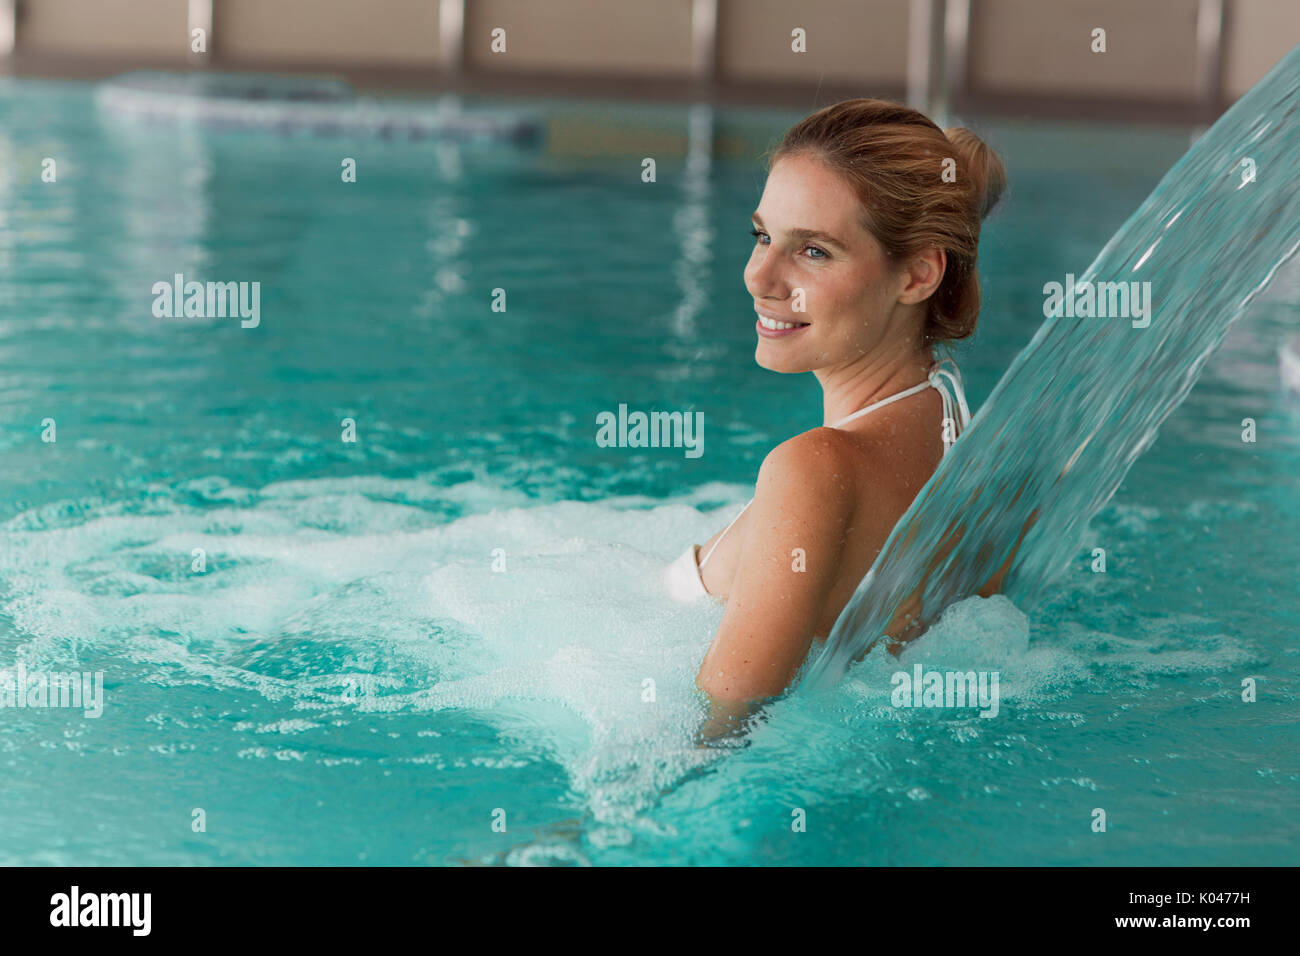 Portrait of beautiful woman relaxing in swimming pool - Stock Image